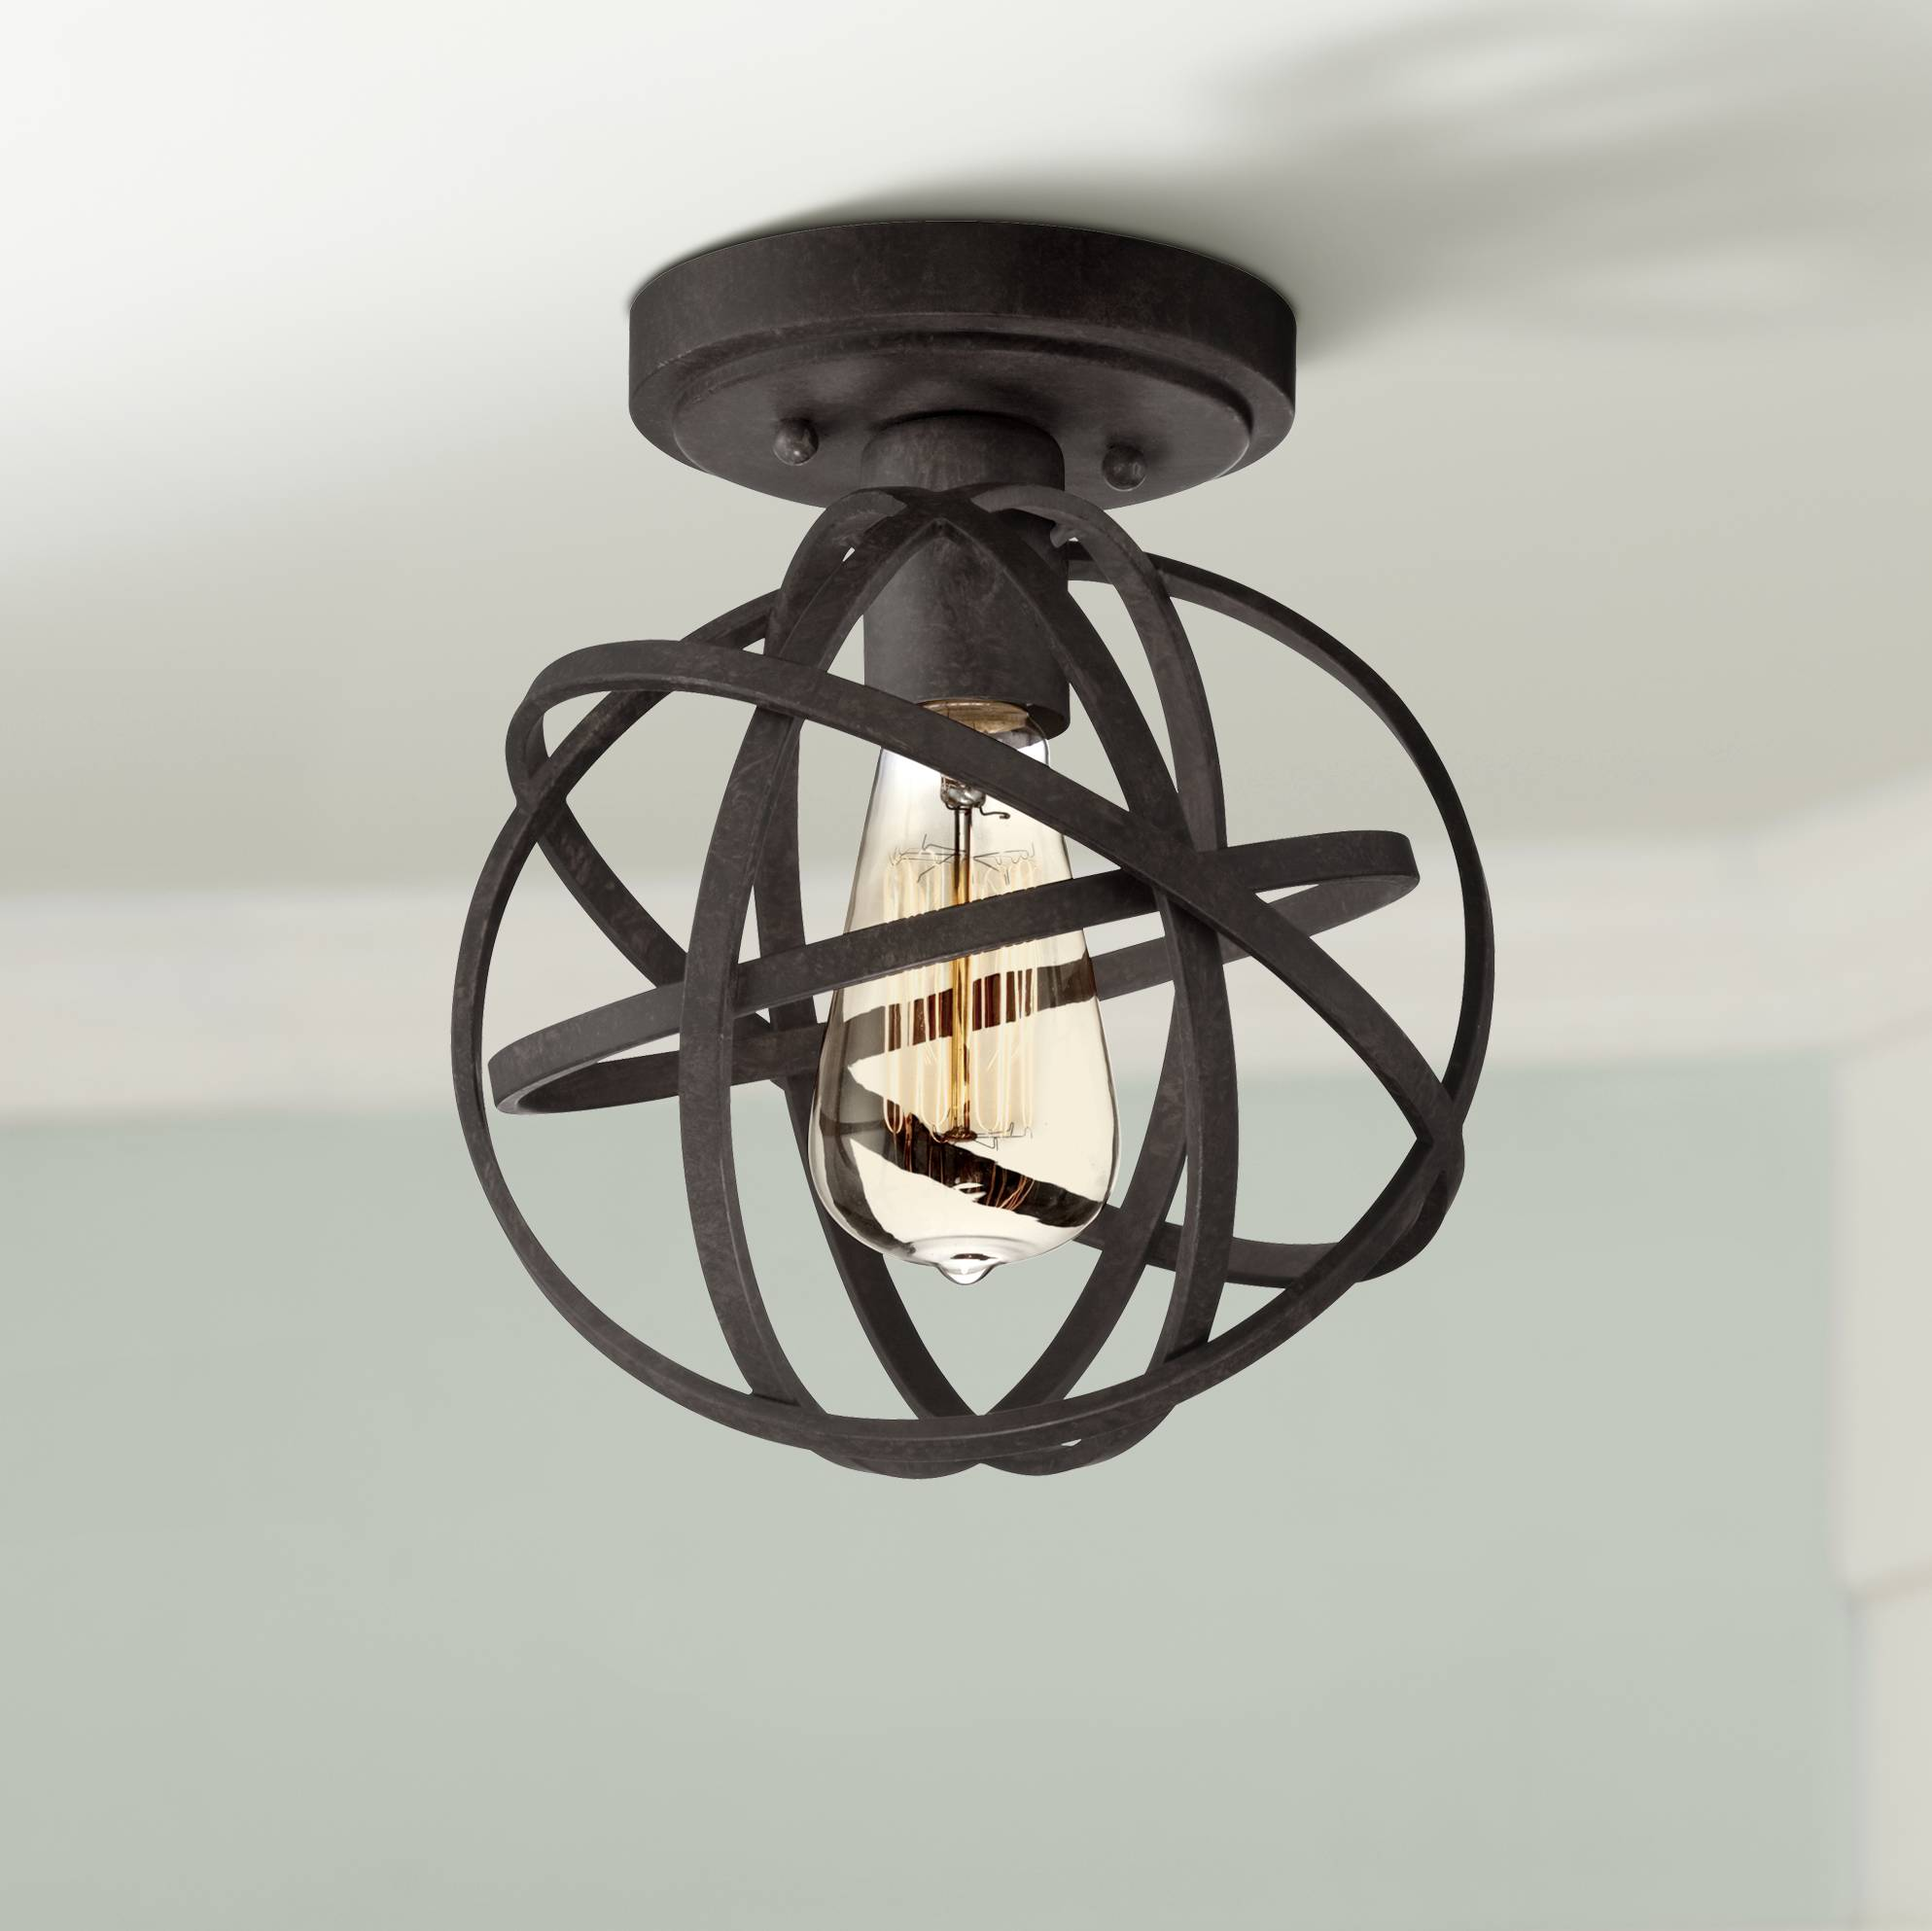 new arrival 9136a 5e73b Details about Industrial Ceiling Light Semi Flush Mount Fixture LED Atomic  Black 8